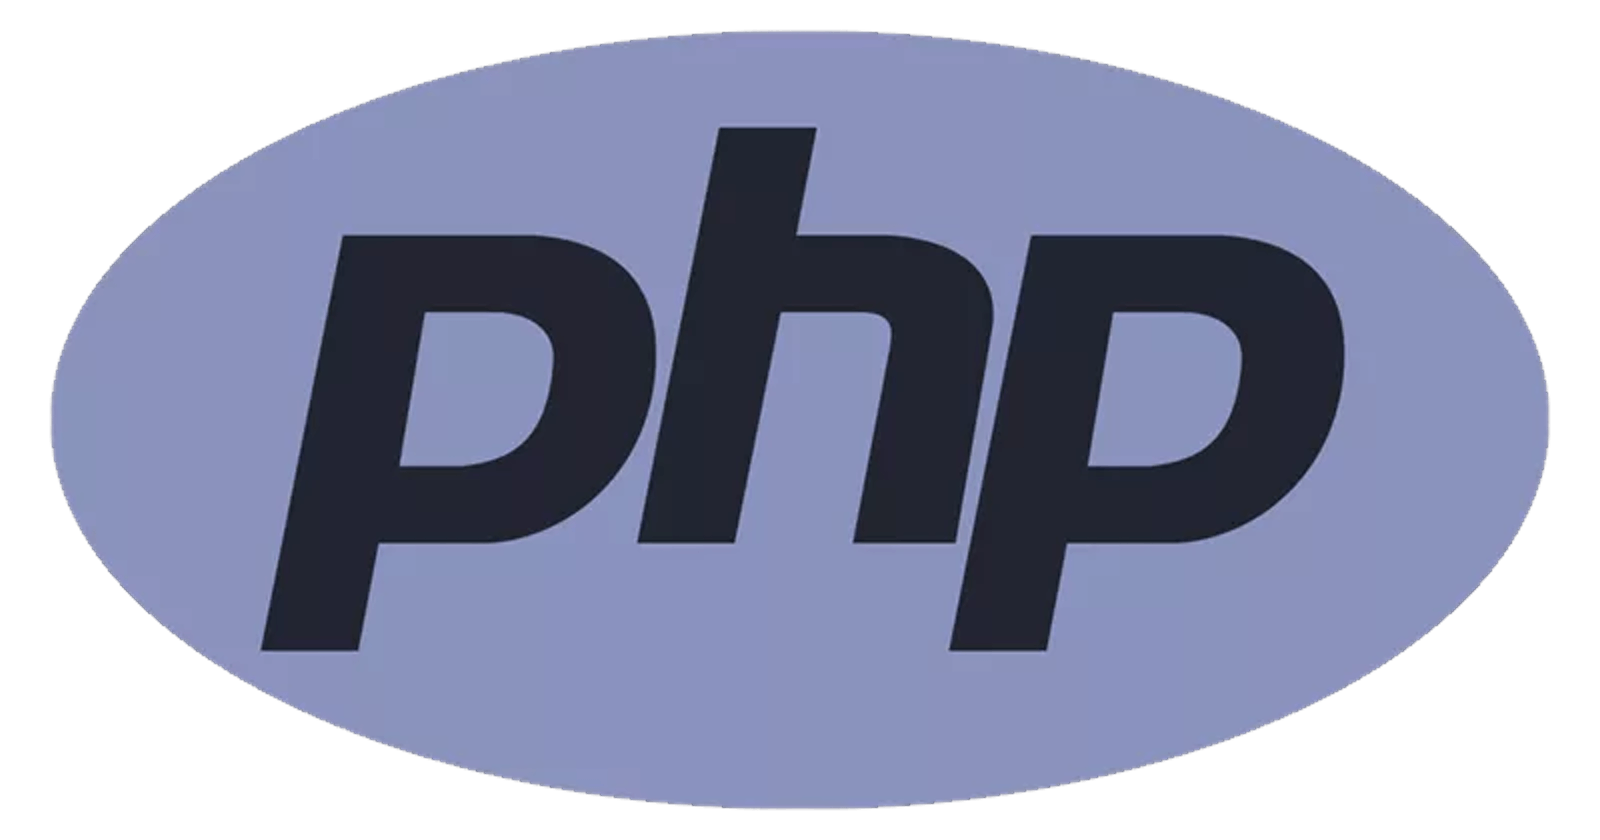 Updating from PHP7.2 to PHP 7.3 on Linux Mint